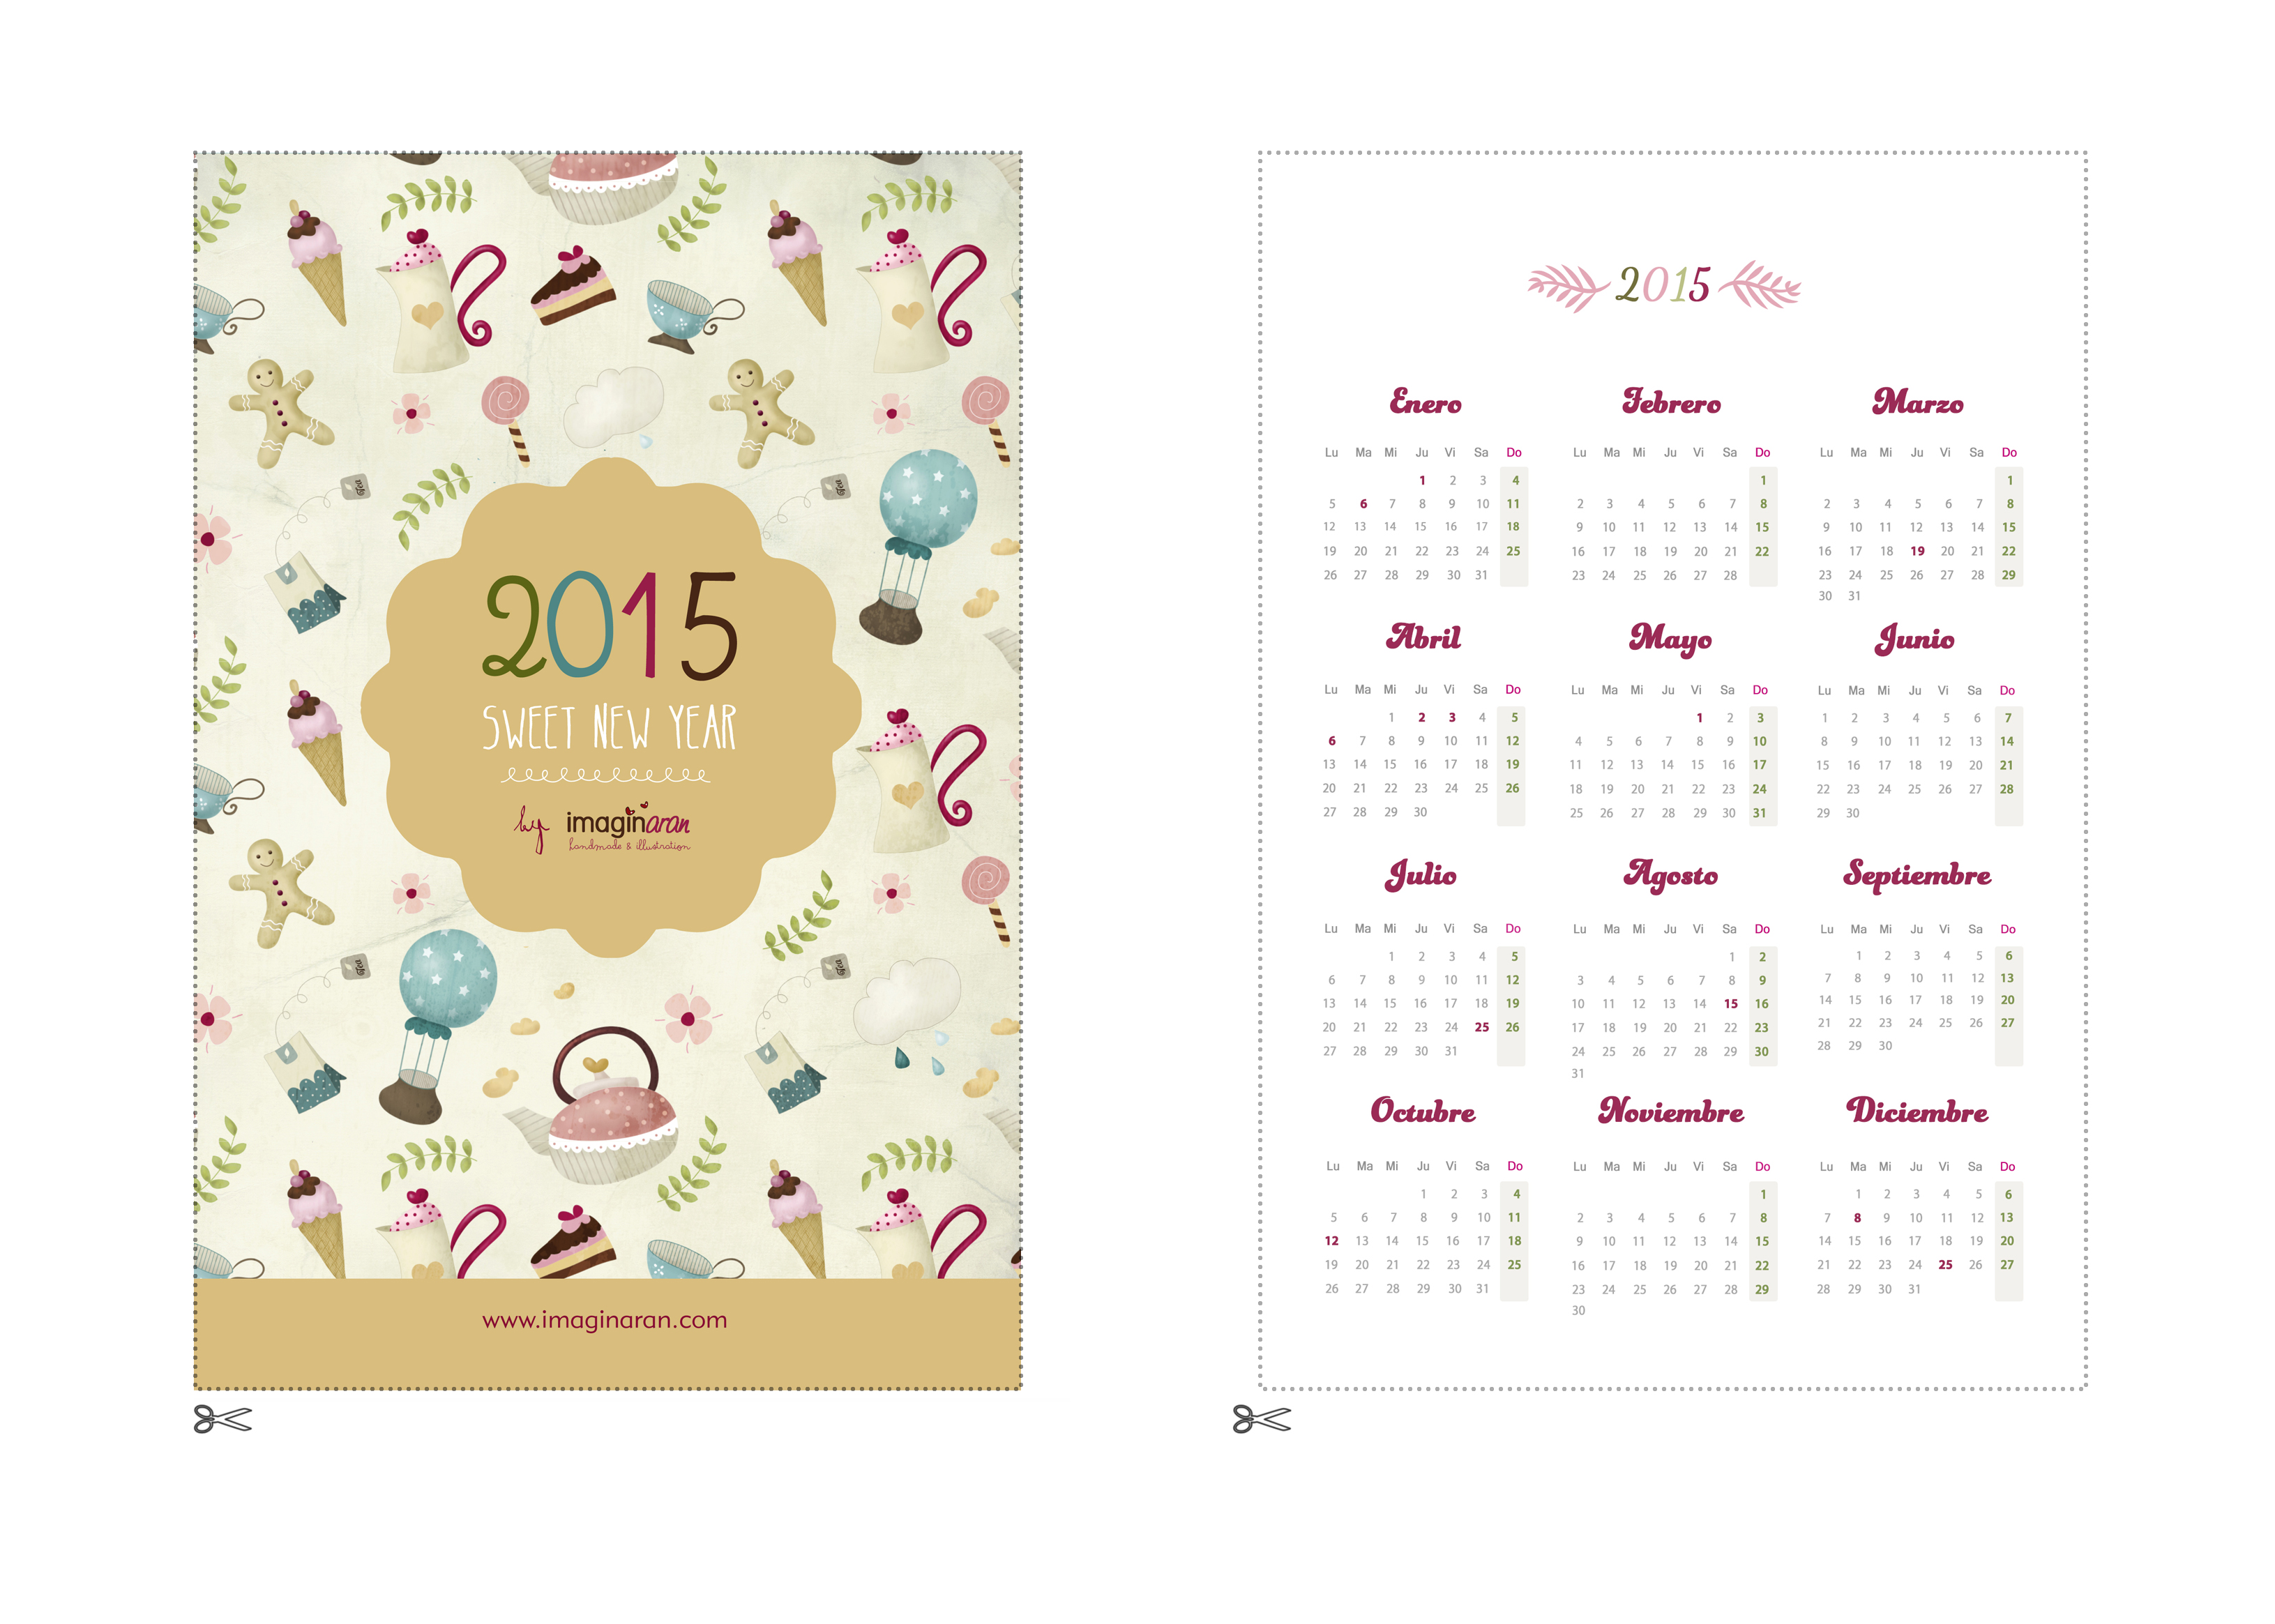 calendario-imaginaran-diy-2013.psd